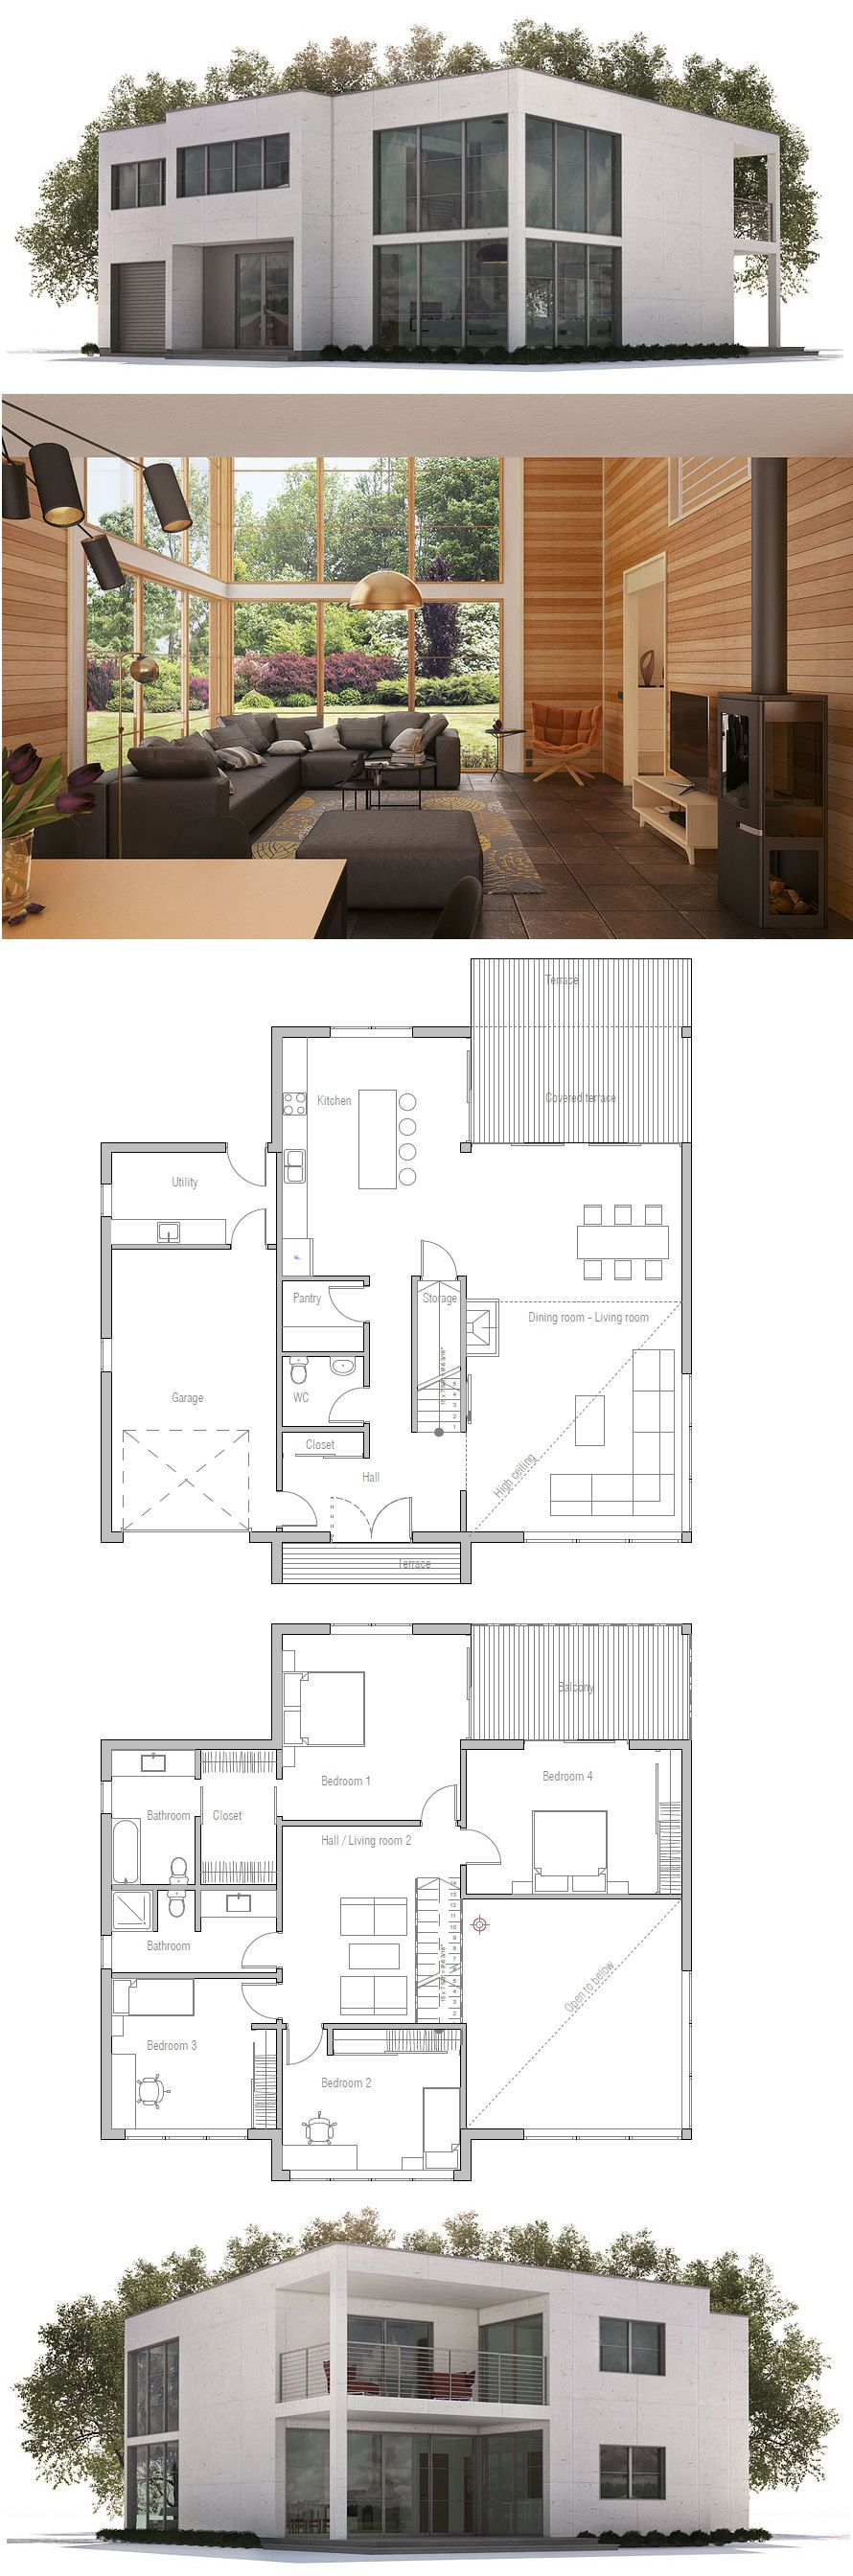 ^ ontemporary Modern House Plan 76317 Facebook, Double doors and ...